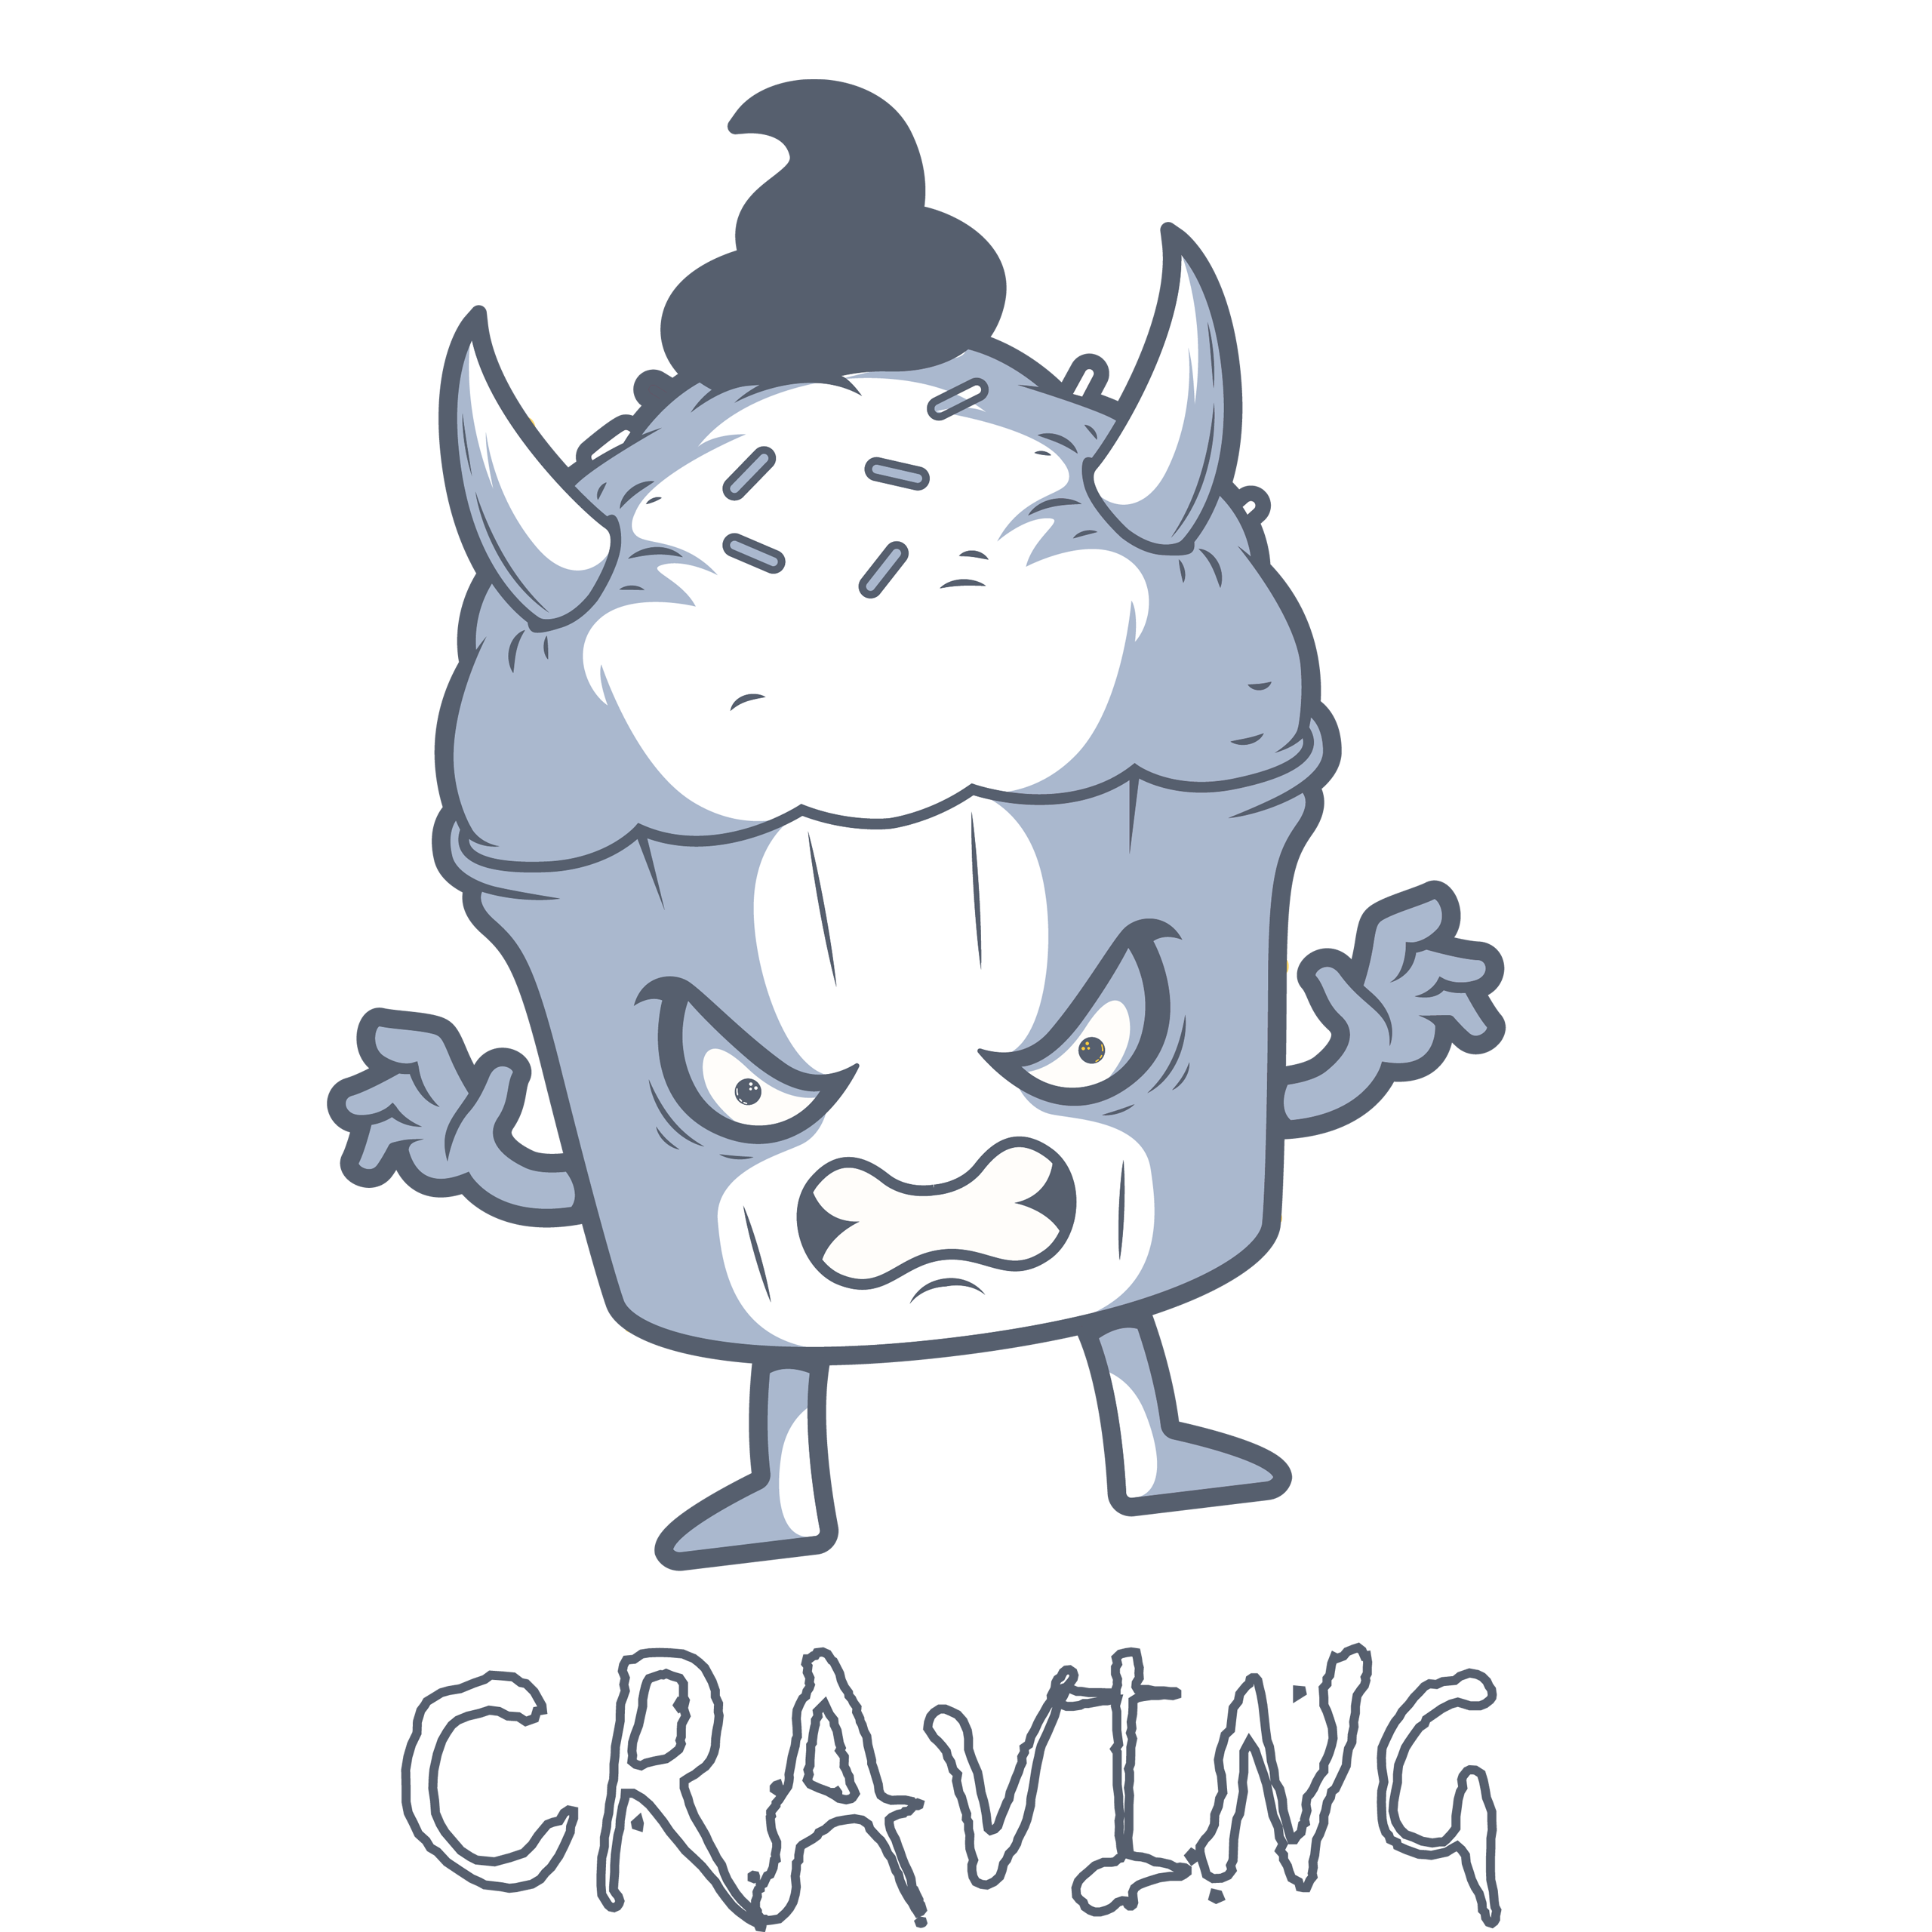 carving_gray